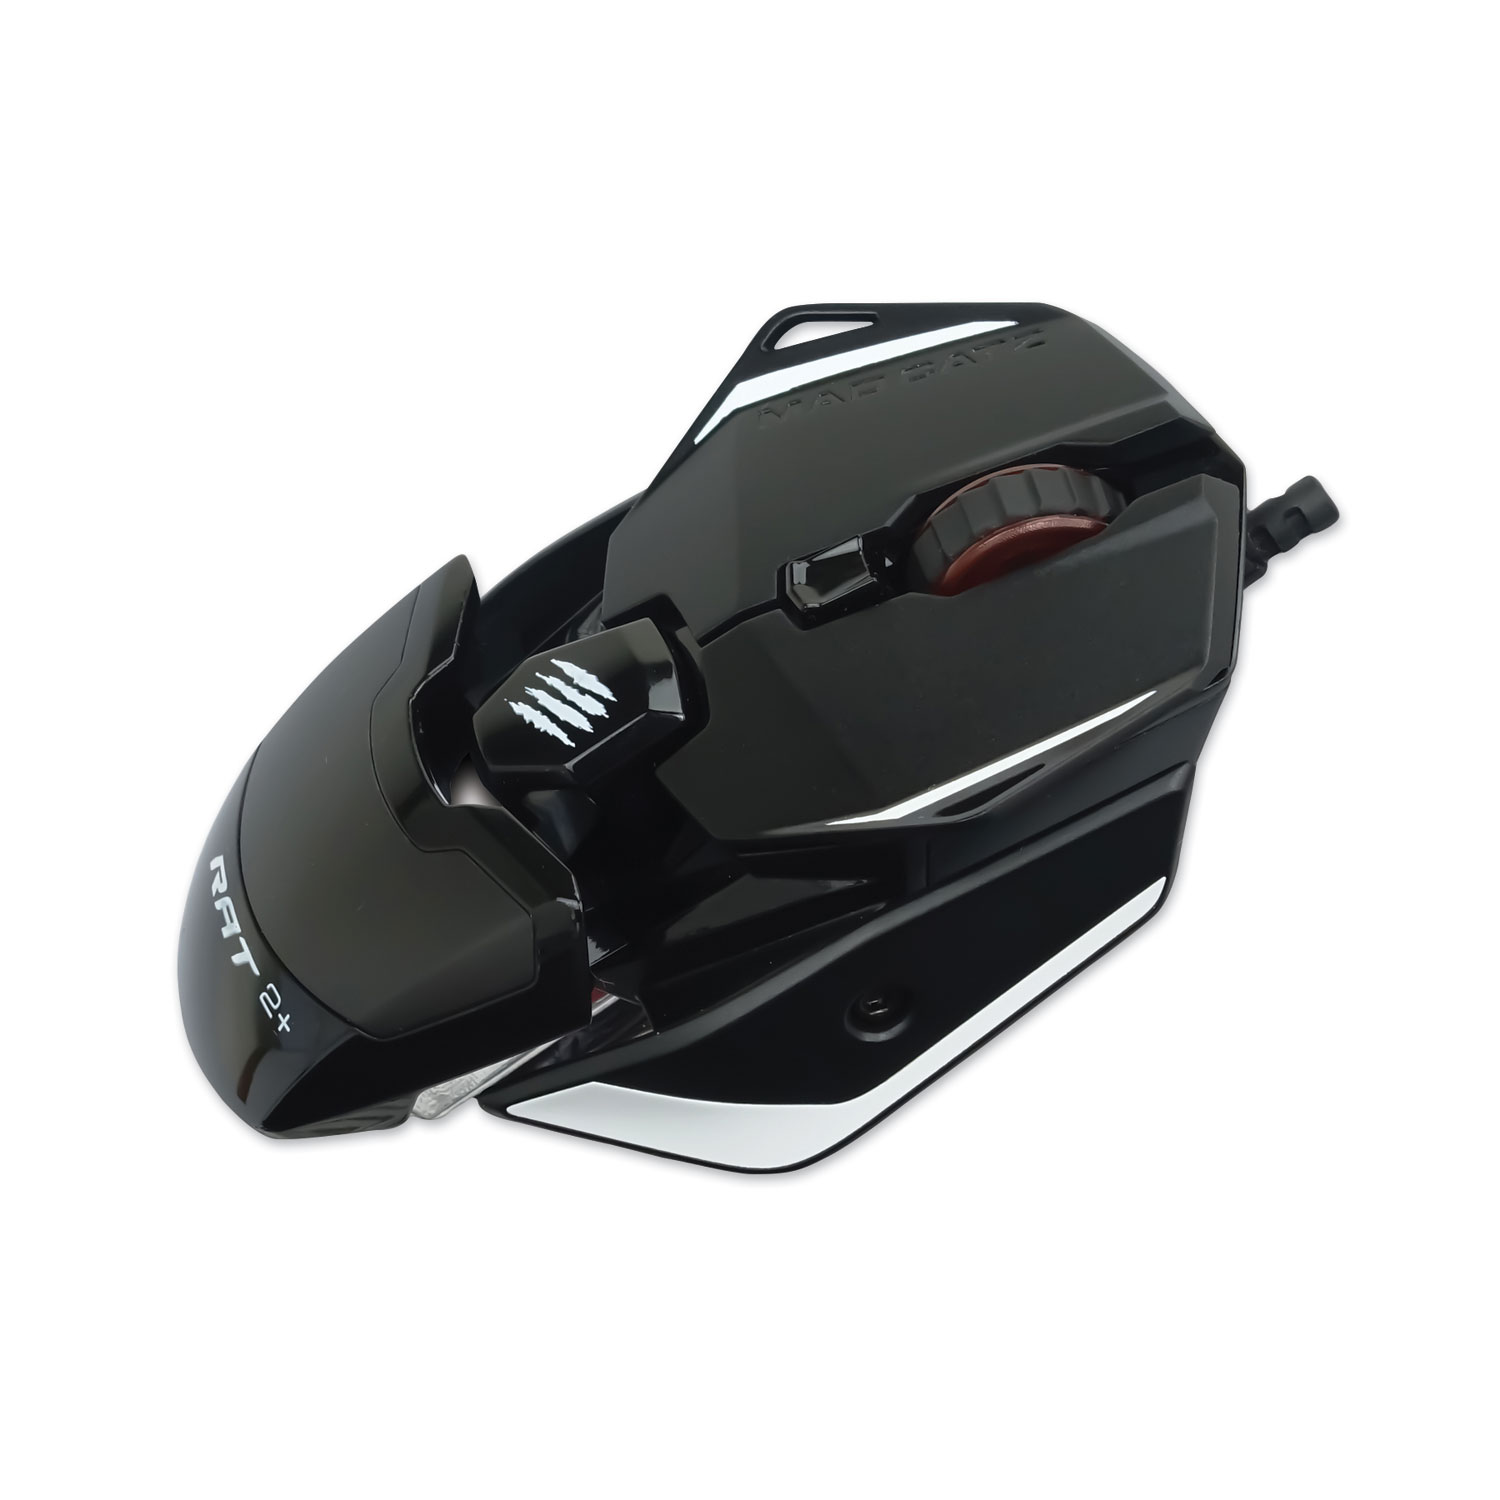 Authentic R.A.T. 2 Plus Optical Gaming Mouse, USB 2.0, Left/Right Hand Use, Black